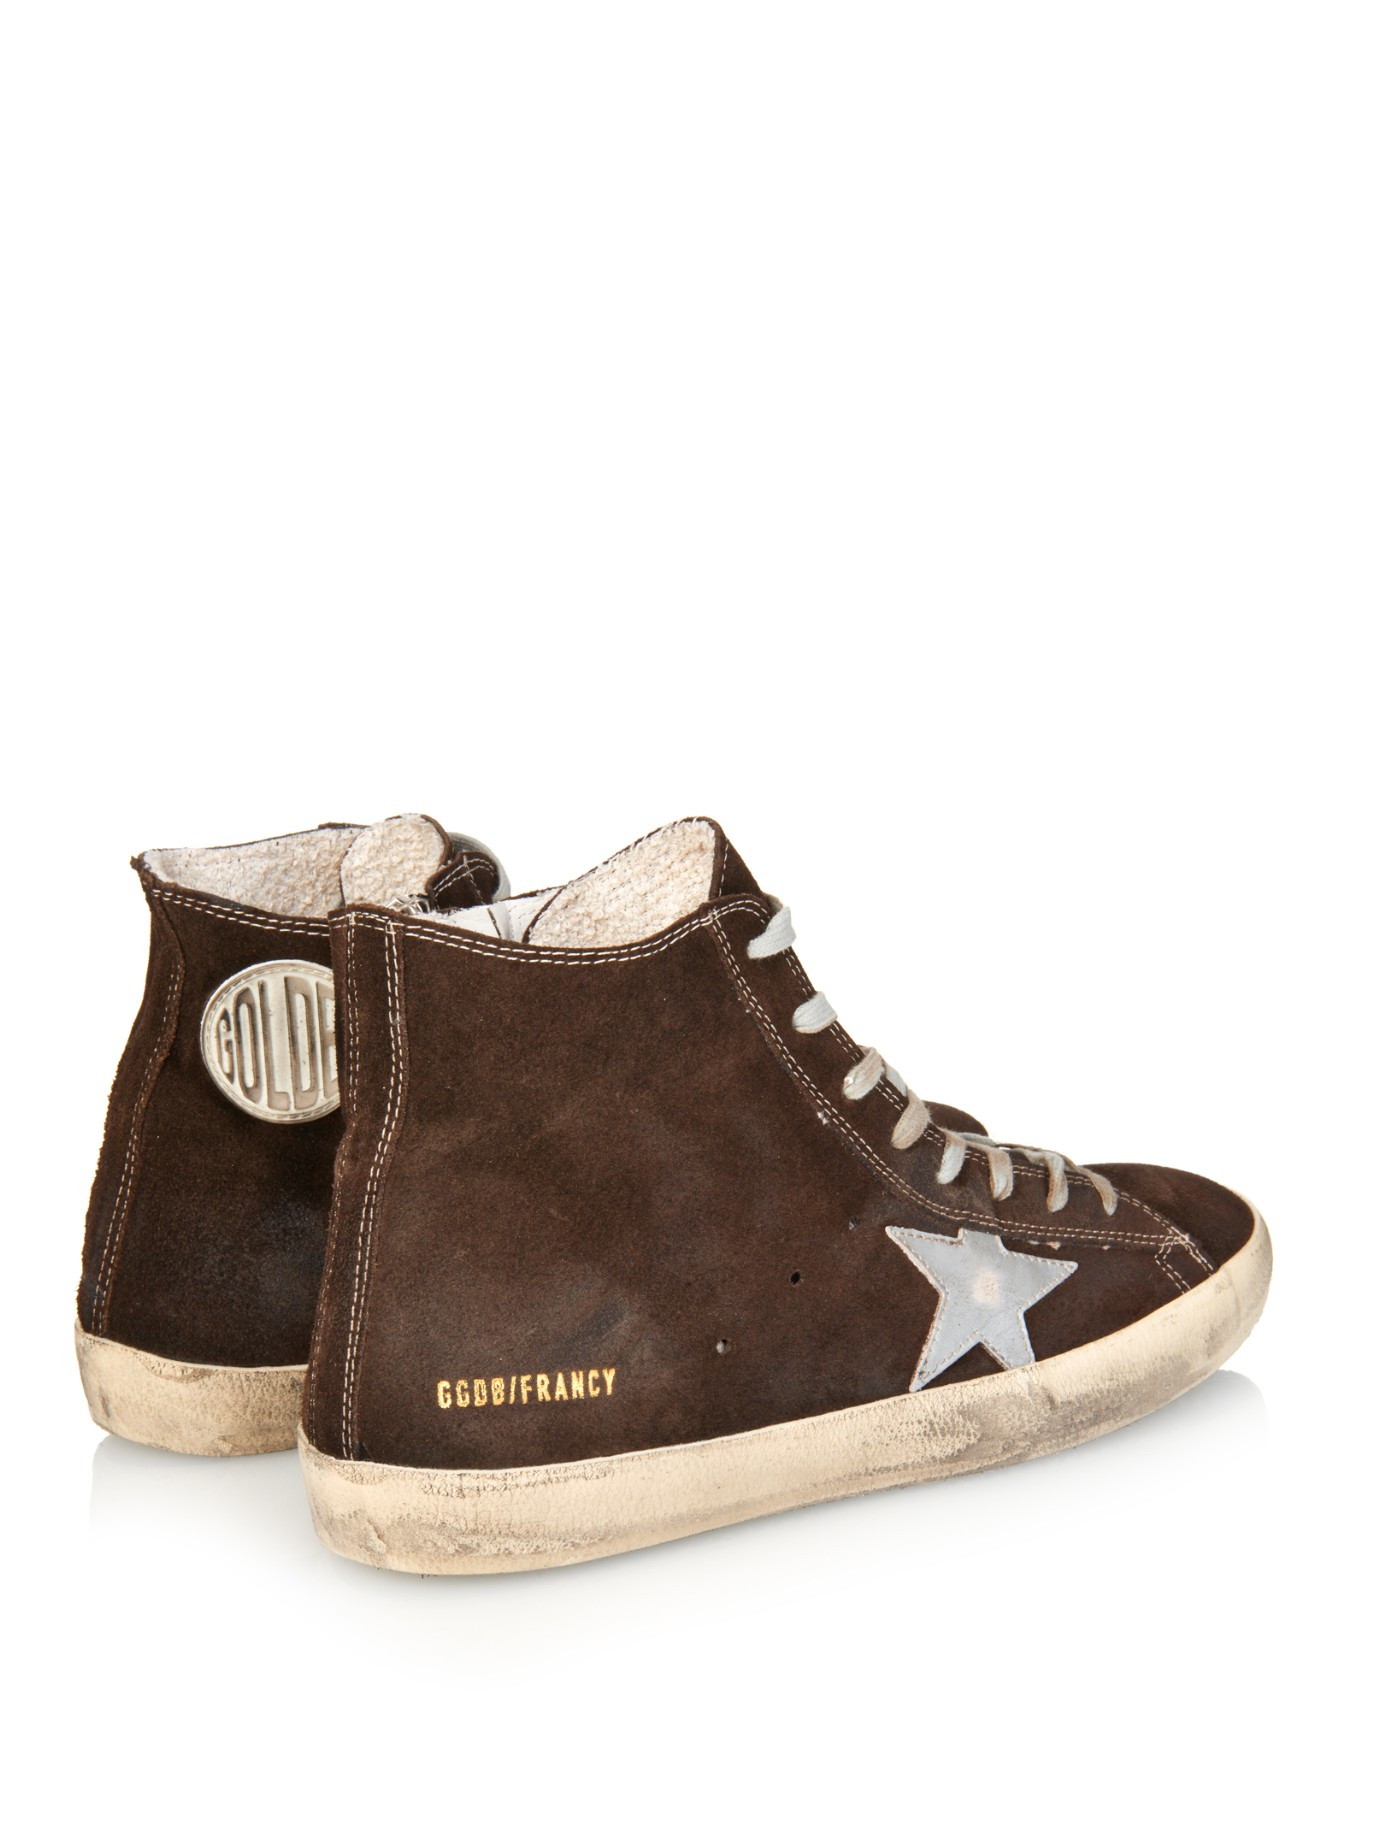 lyst golden goose deluxe brand suede and leather mid star sneakers in brown for men. Black Bedroom Furniture Sets. Home Design Ideas